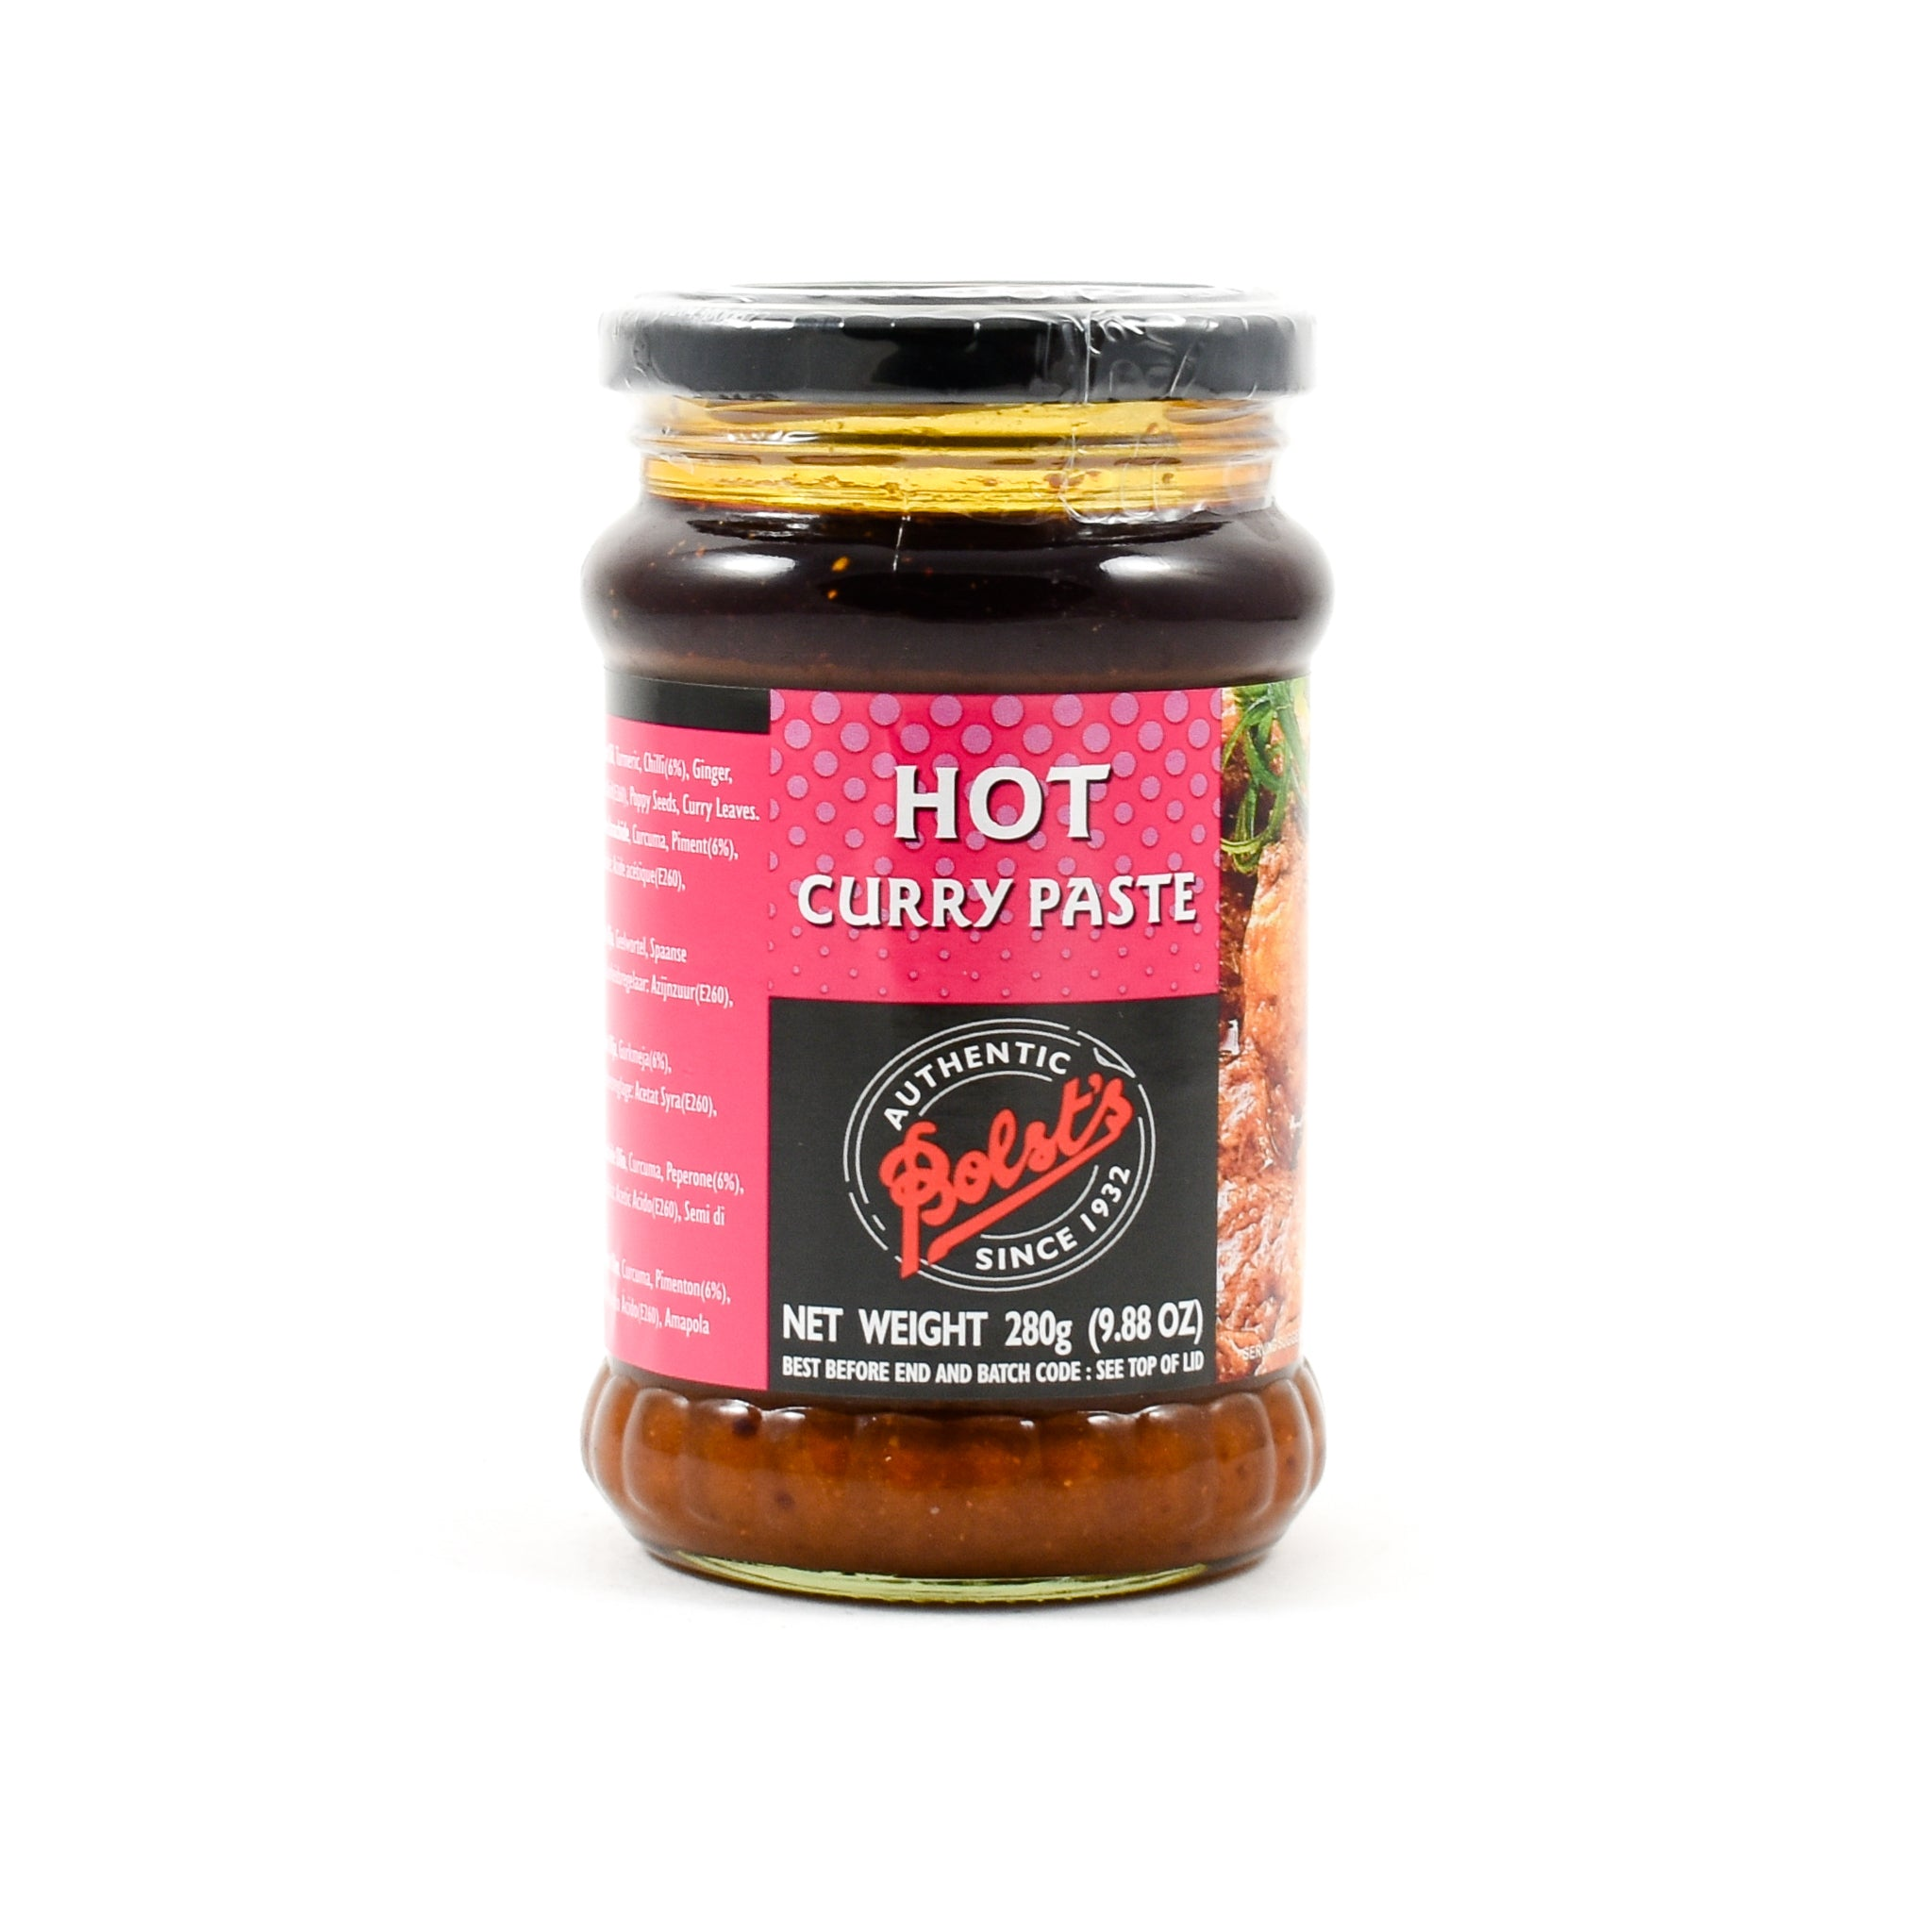 Bolt's Bolst's Curry Paste Hot 280g Ingredients Sauces & Condiments Asian Sauces & Condiments Indian Food